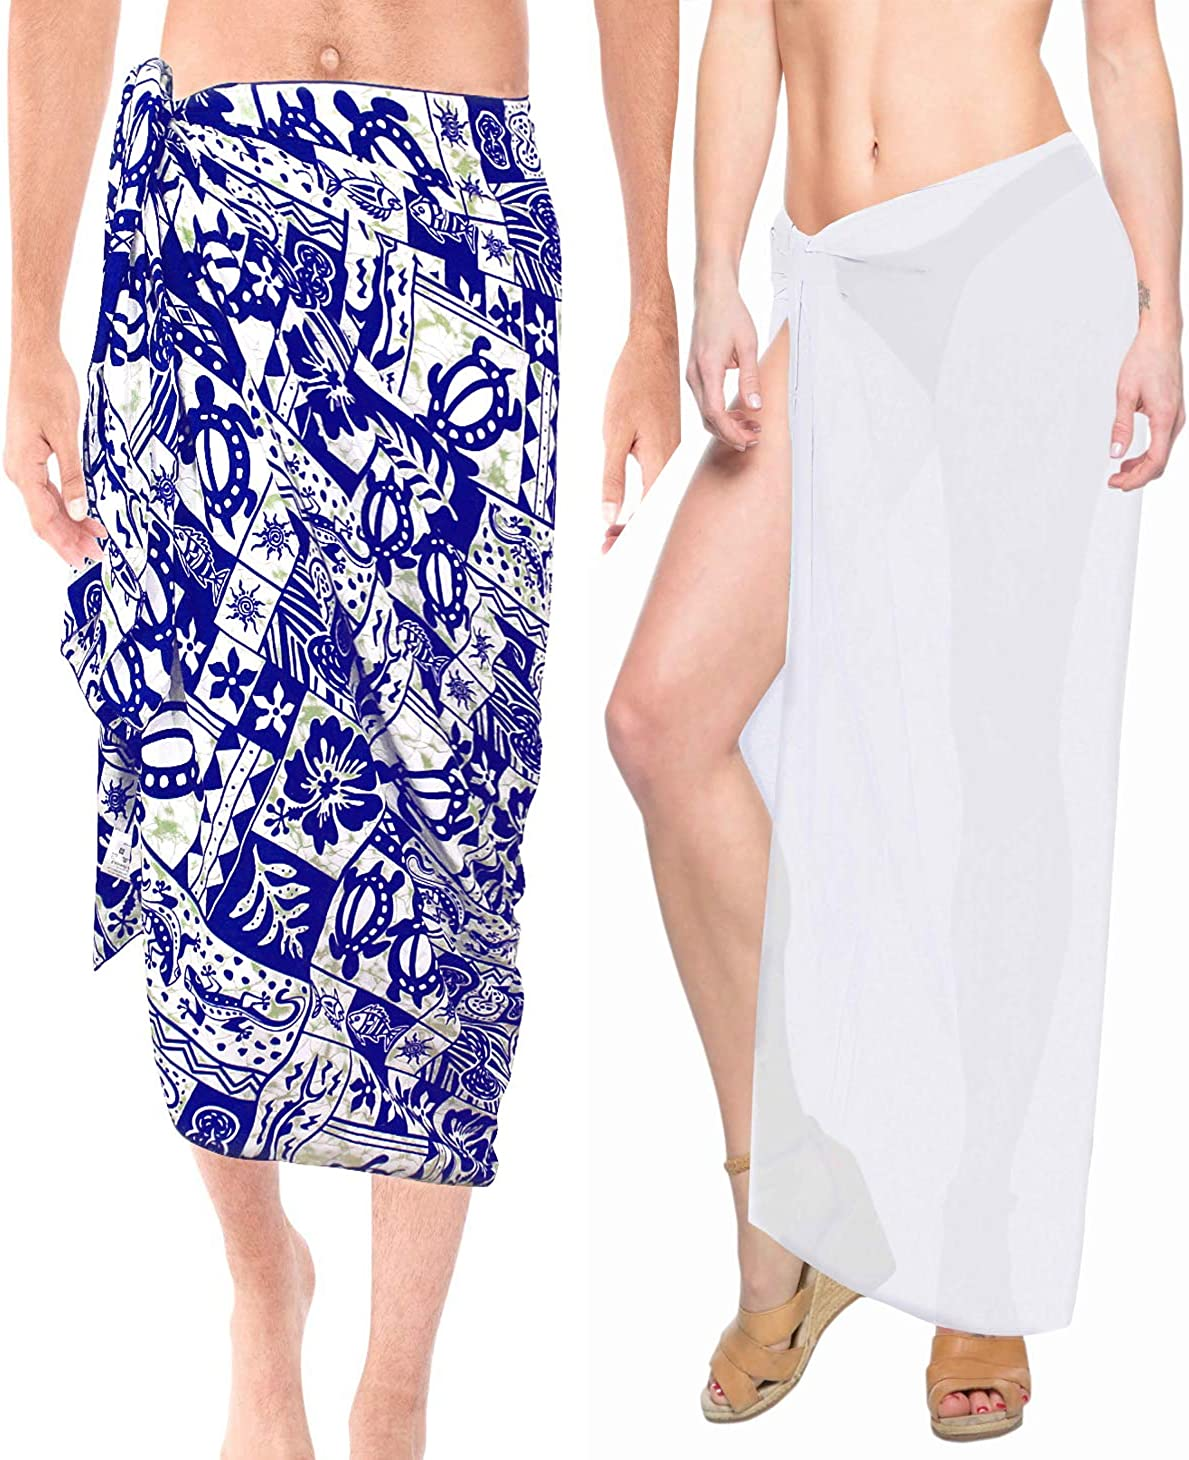 LA LEELA Women's Swimsuit Cover Ups Beach Sarongs Plus Size Work from Home Clothes Women Beach Wrap Sarong Pack of 2